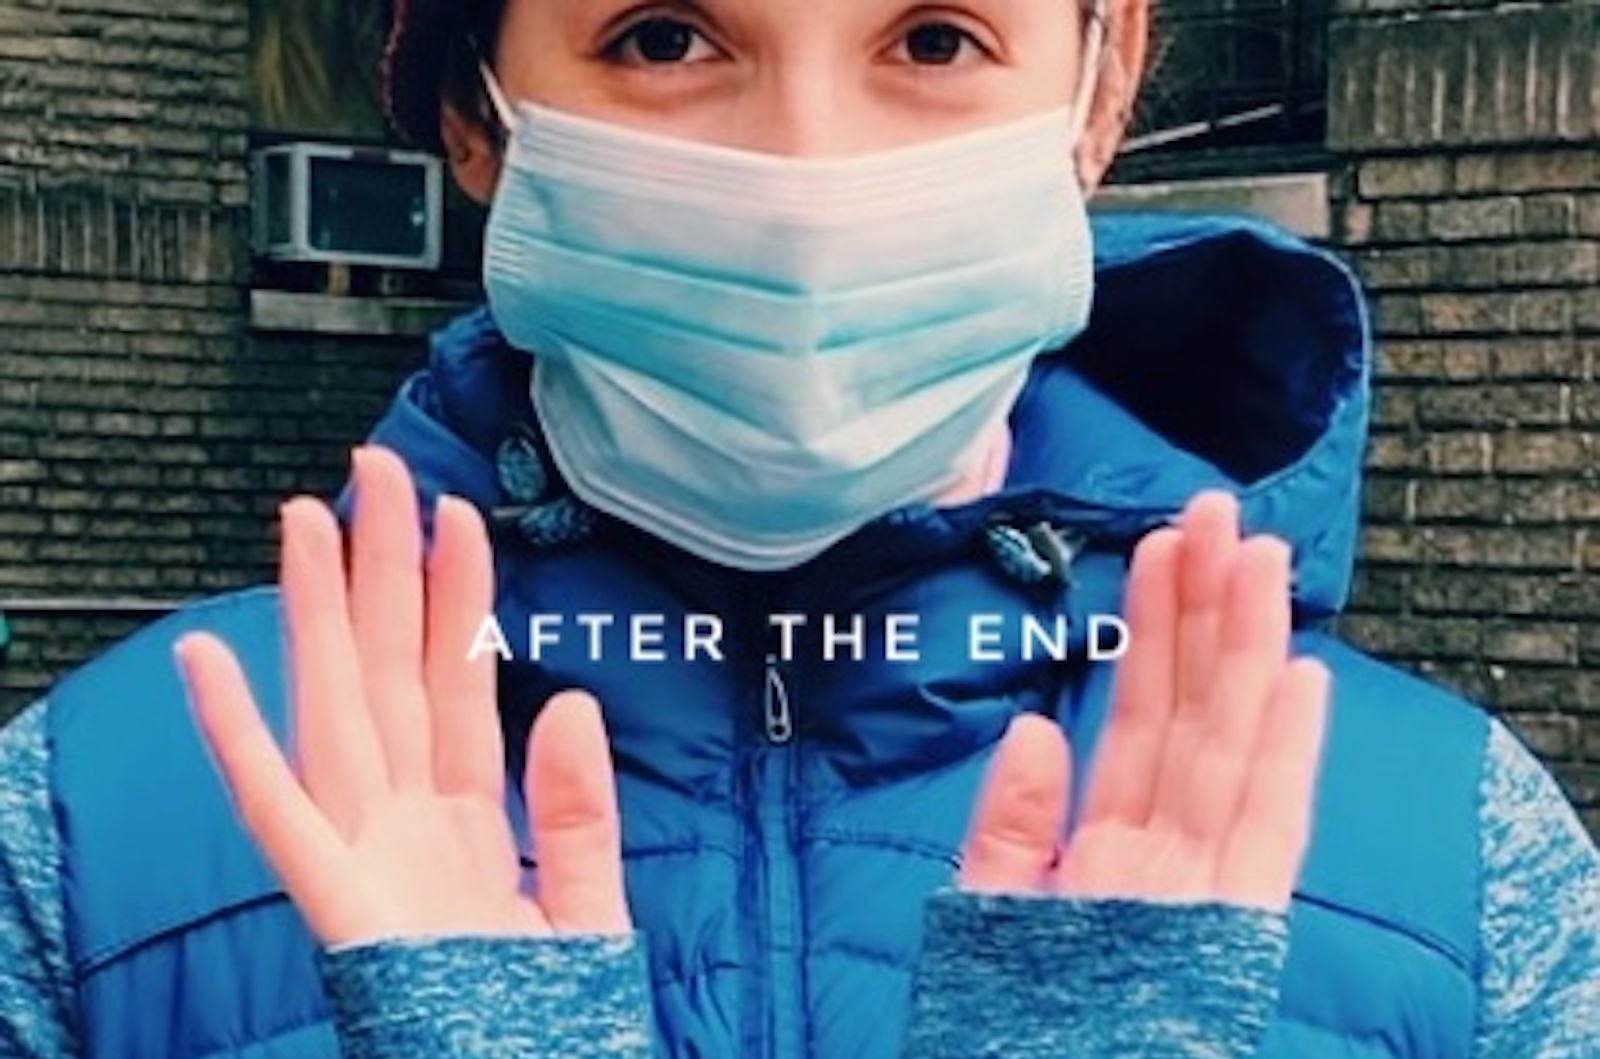 After the End - Nicotine Dolls